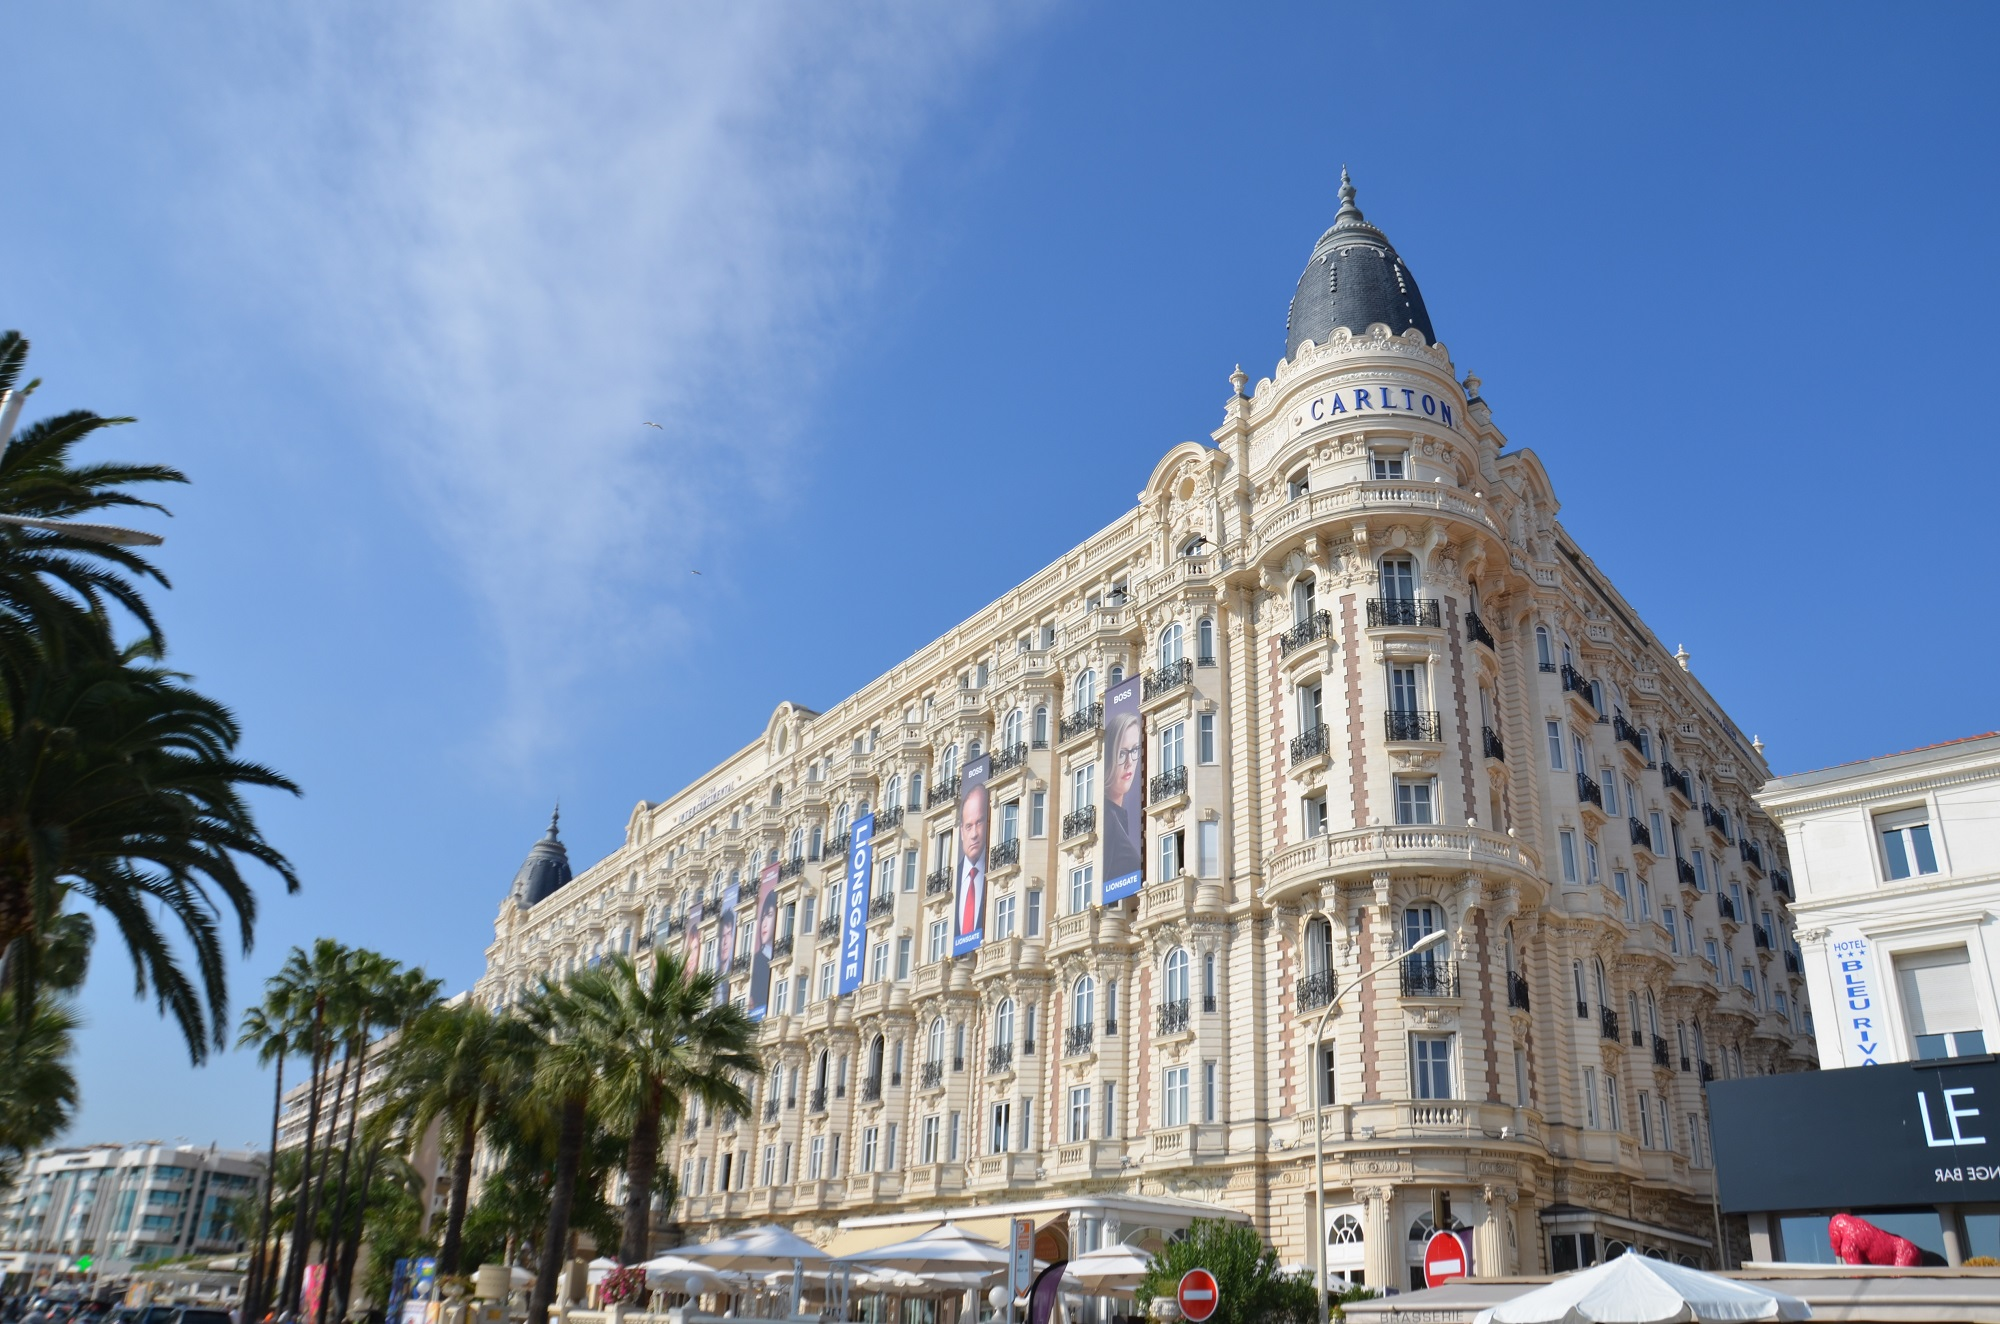 Hôtel à Cannes, French Riviera